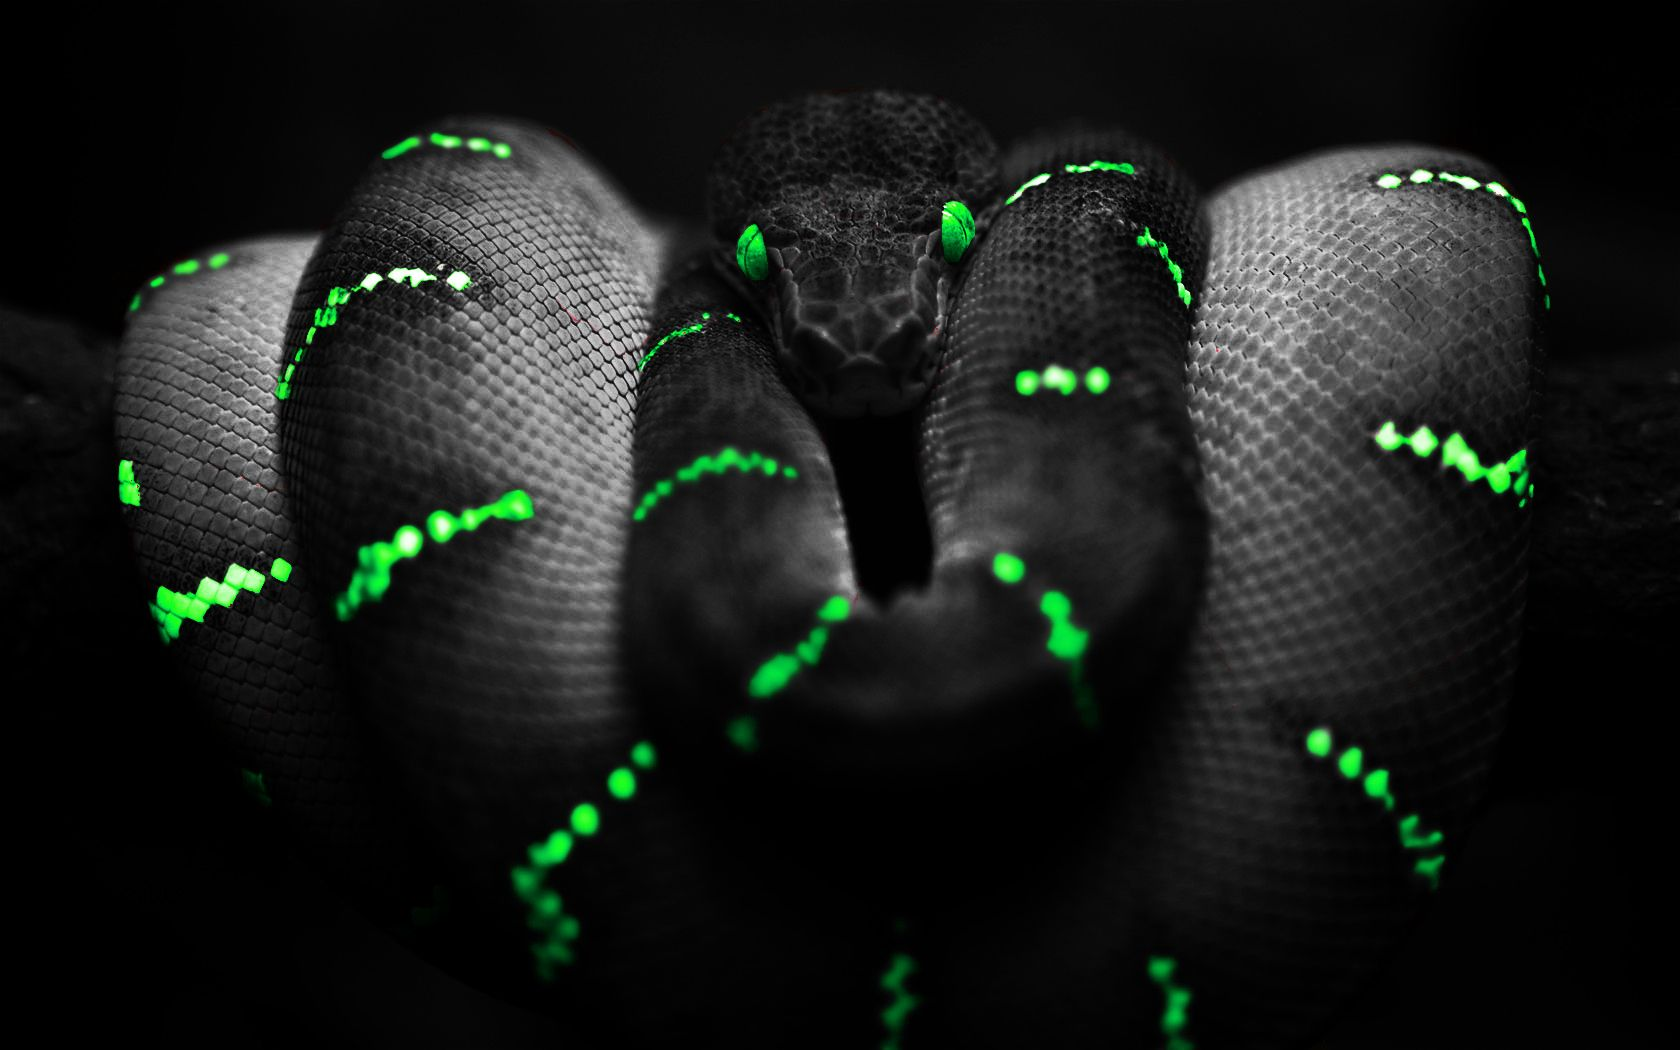 Snake Nature Black Green Snake Wallpaper Black Wallpaper Iphone Colorful Wallpaper Animal Wallpaper